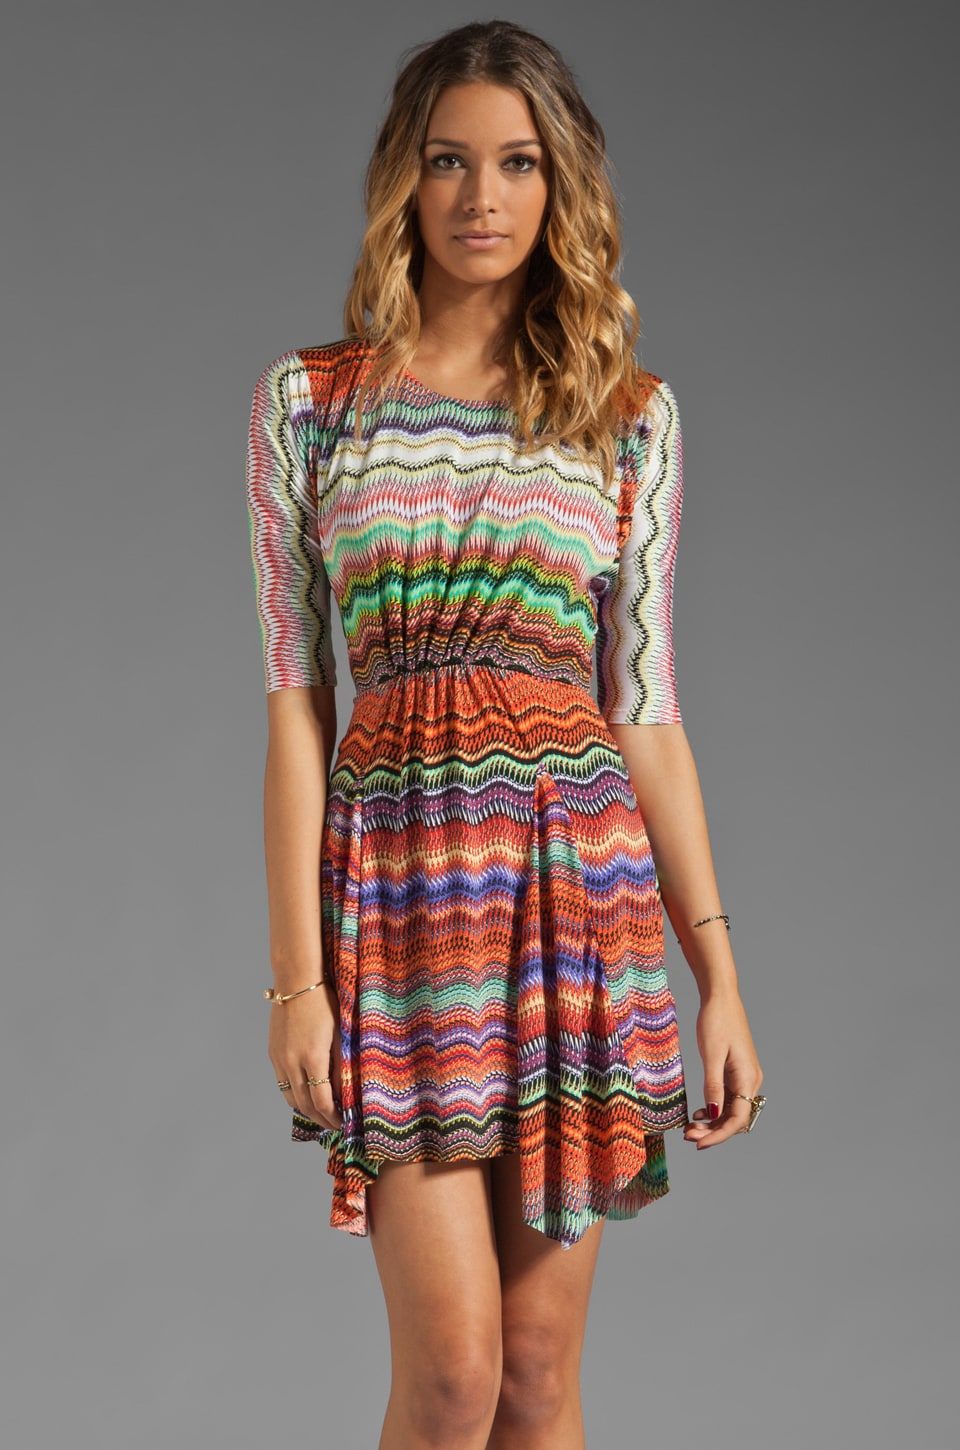 T-Bags LosAngeles 3/4 Sleeve Mini Dress in Zig Zag Multi